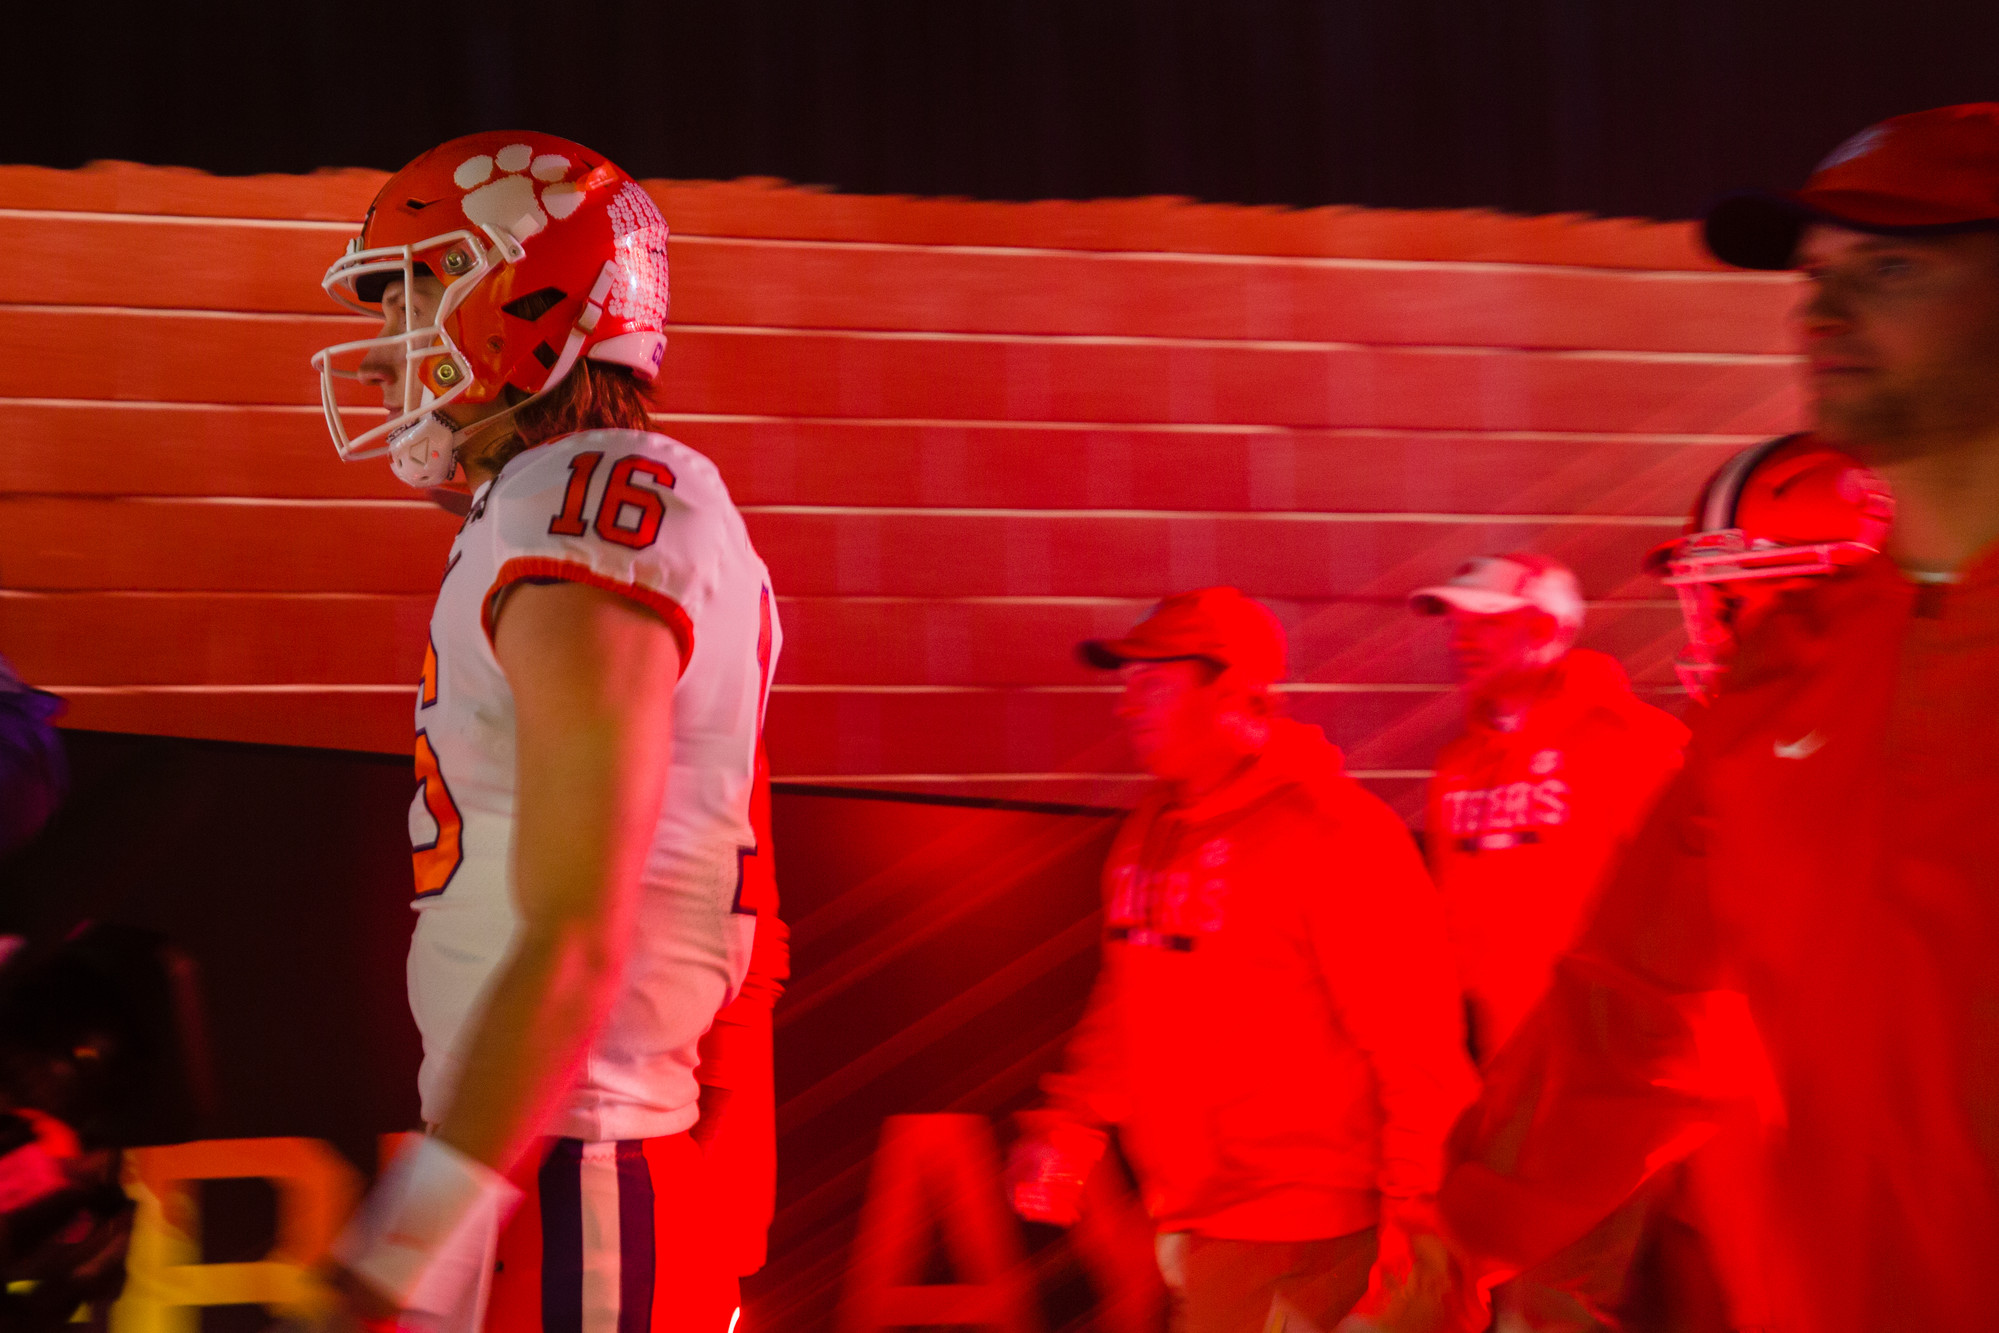 Clemson quarterback Trevor Lawrence walks out of the tunnel before the 2019 CFP National Championship at Levi's Stadium in Santa Clara, California, on Monday, Jan. 7. The Tigers routed Alabama to win 44-16.